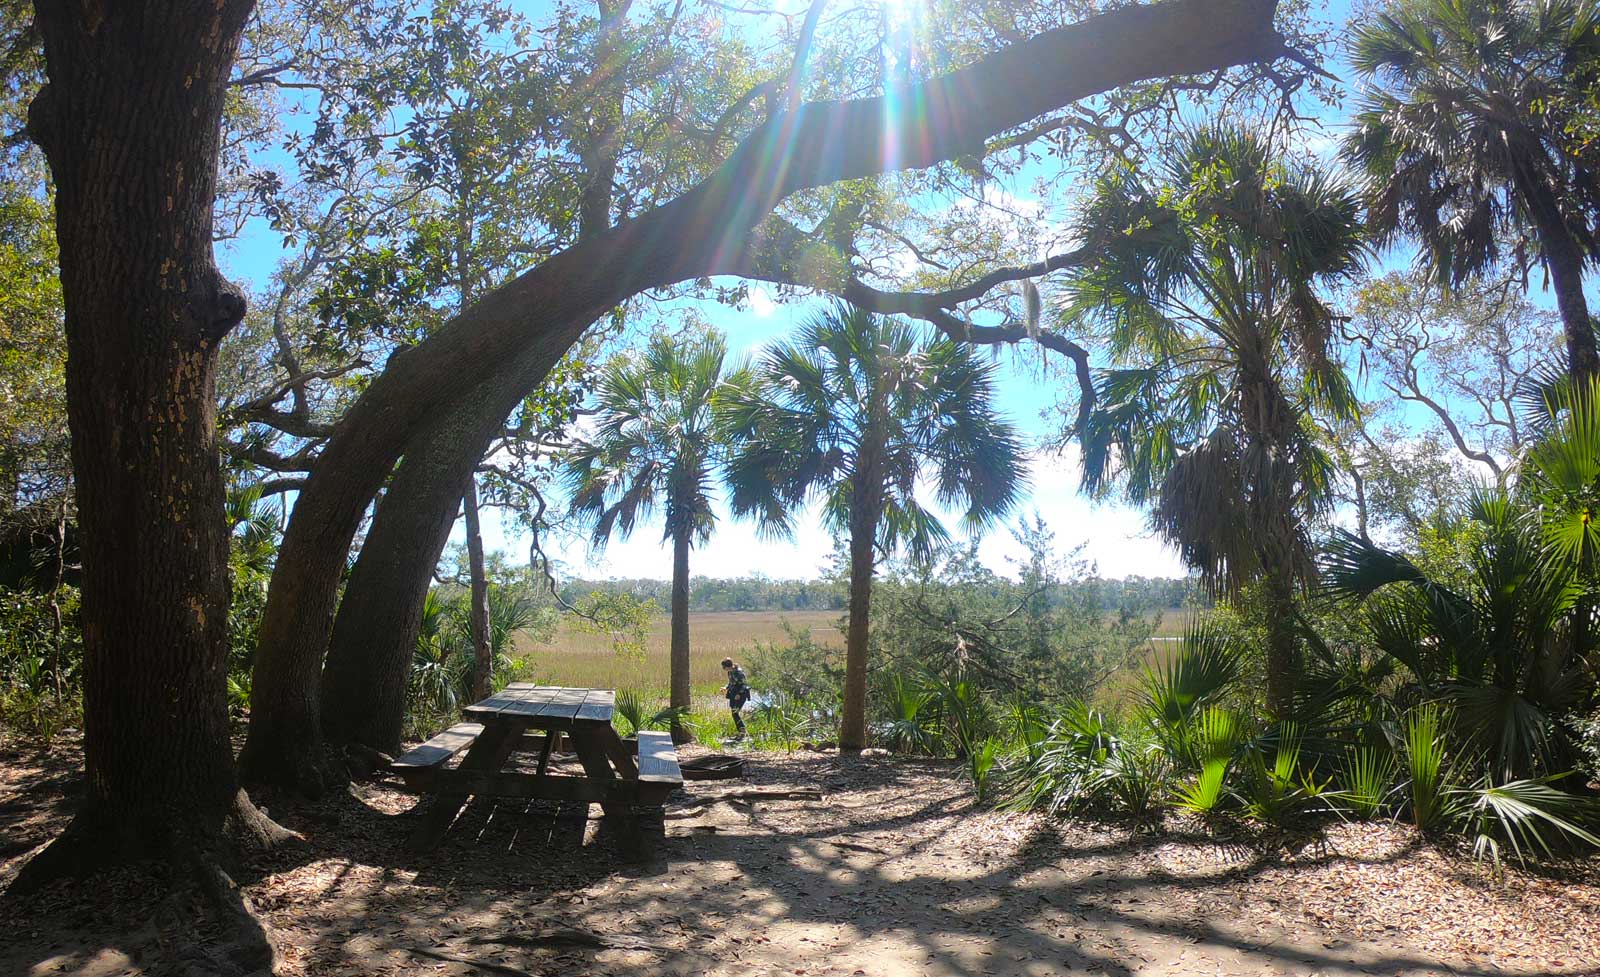 Live Oak Campground walk-in campsite with picnic table and kids playing in nearby salt marsh  while camping at Edisto Beach State Park, SC